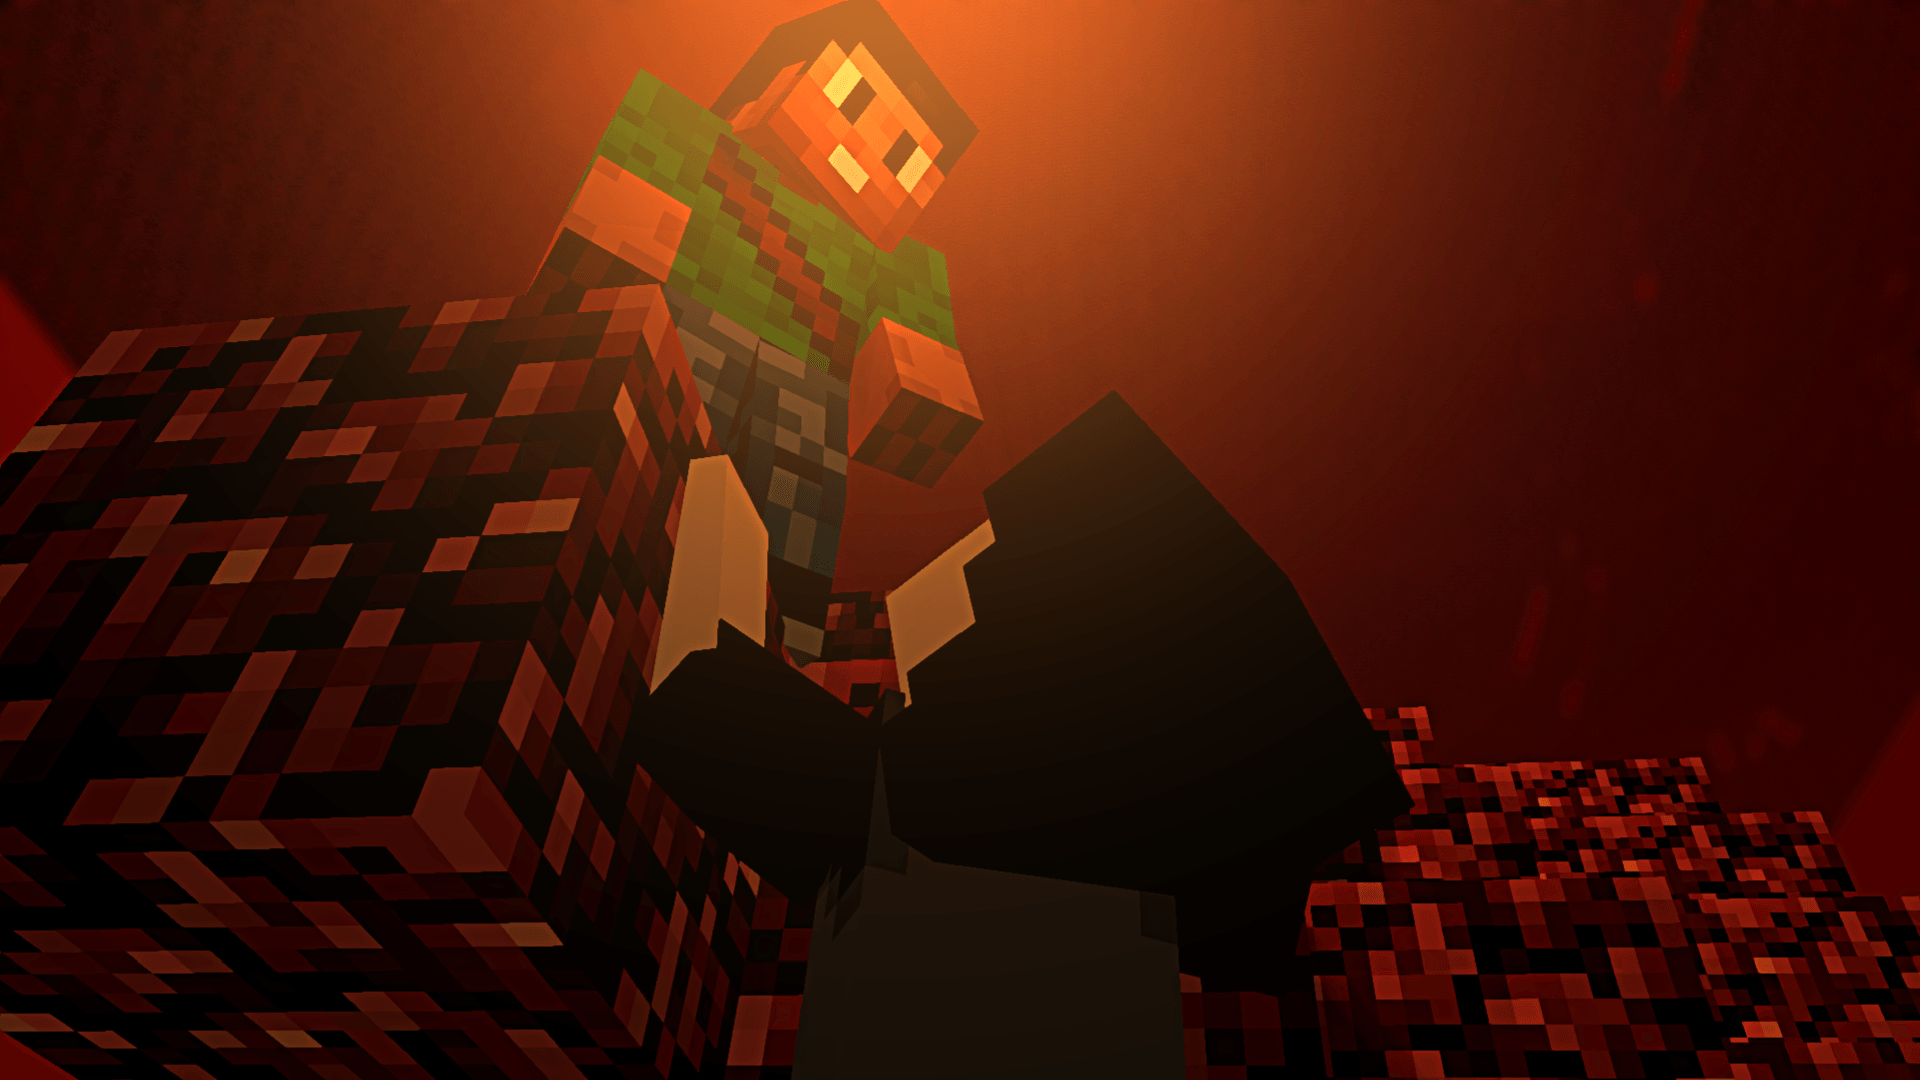 Une chute dans le nether, un Wallpaper de GreenLenux